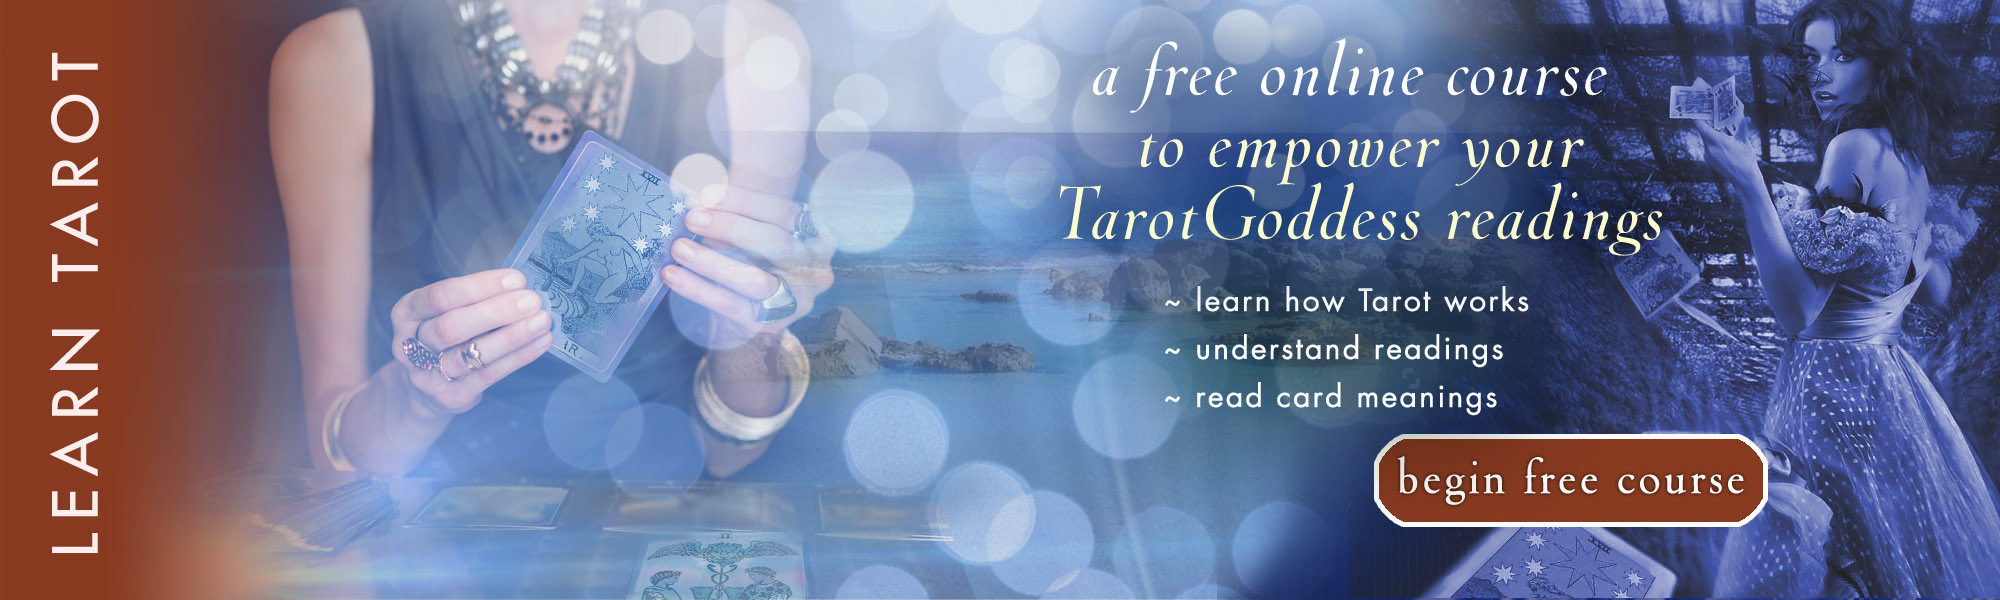 Learn the Tarot lessons